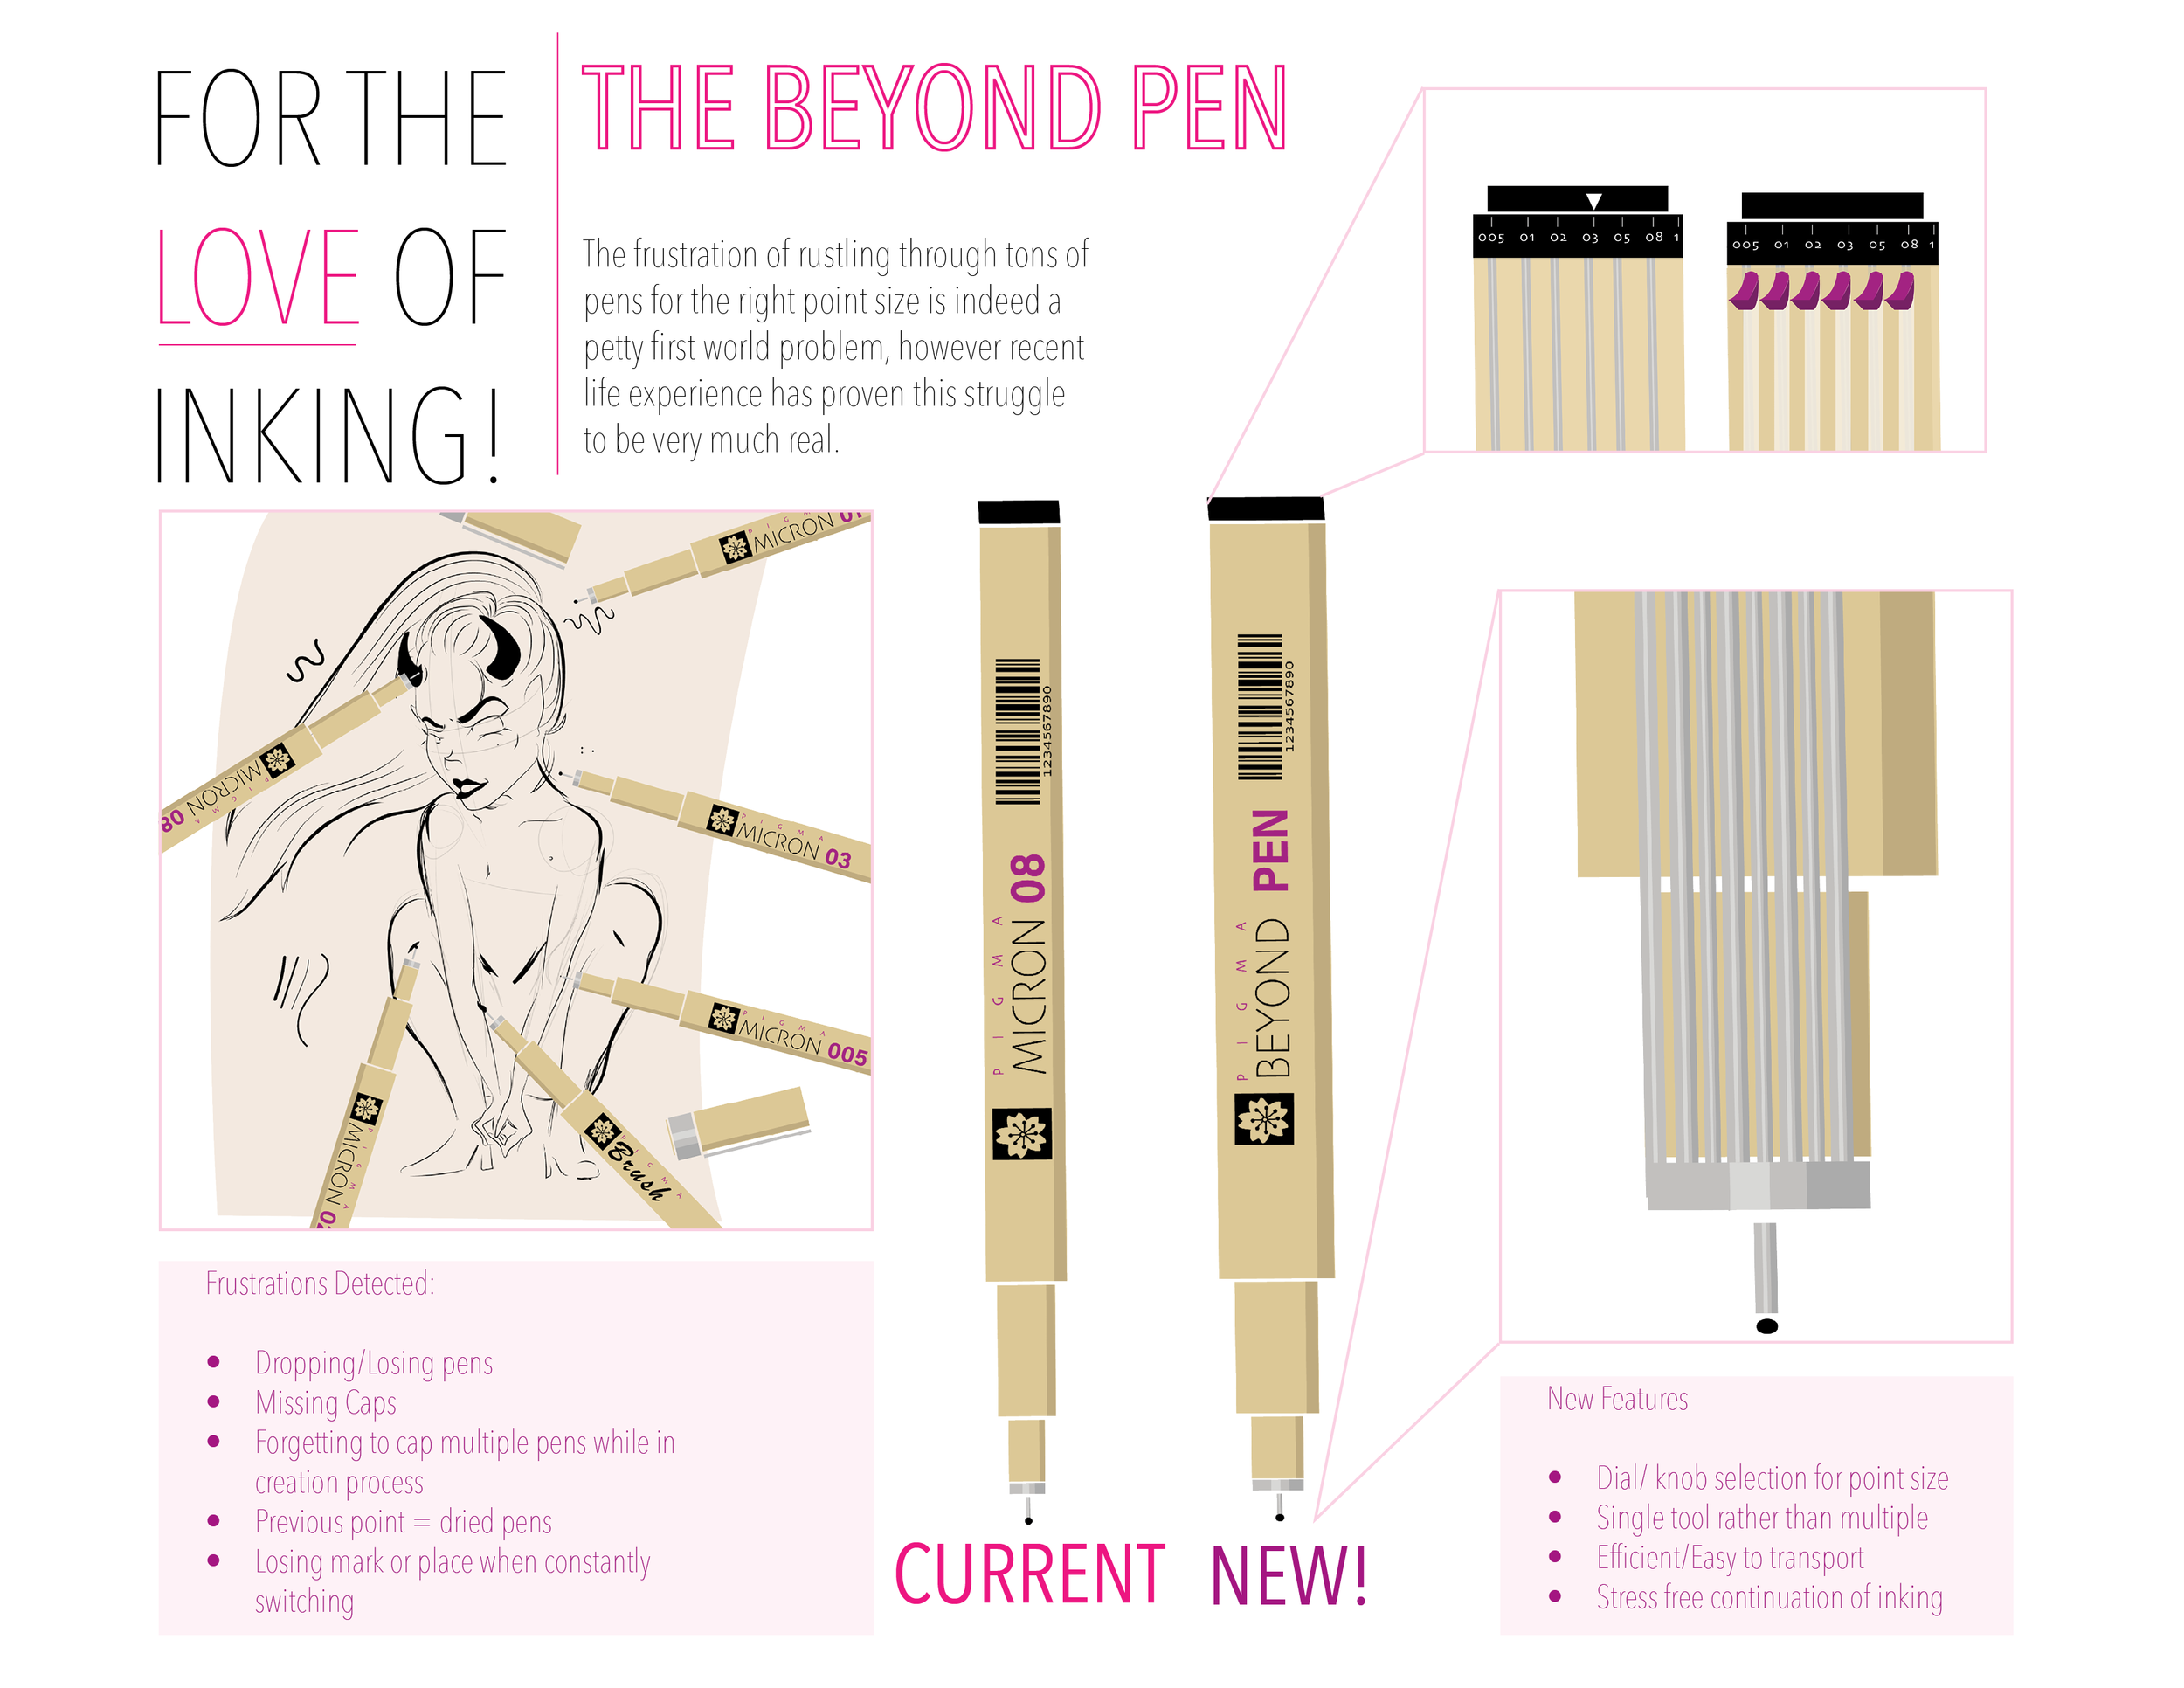 Improving the drawing experience with an efficient and convenient tool composed of multiple pen point sizes, ideal for switching line weights smoothly without searching through your endless realm of multiple pens.